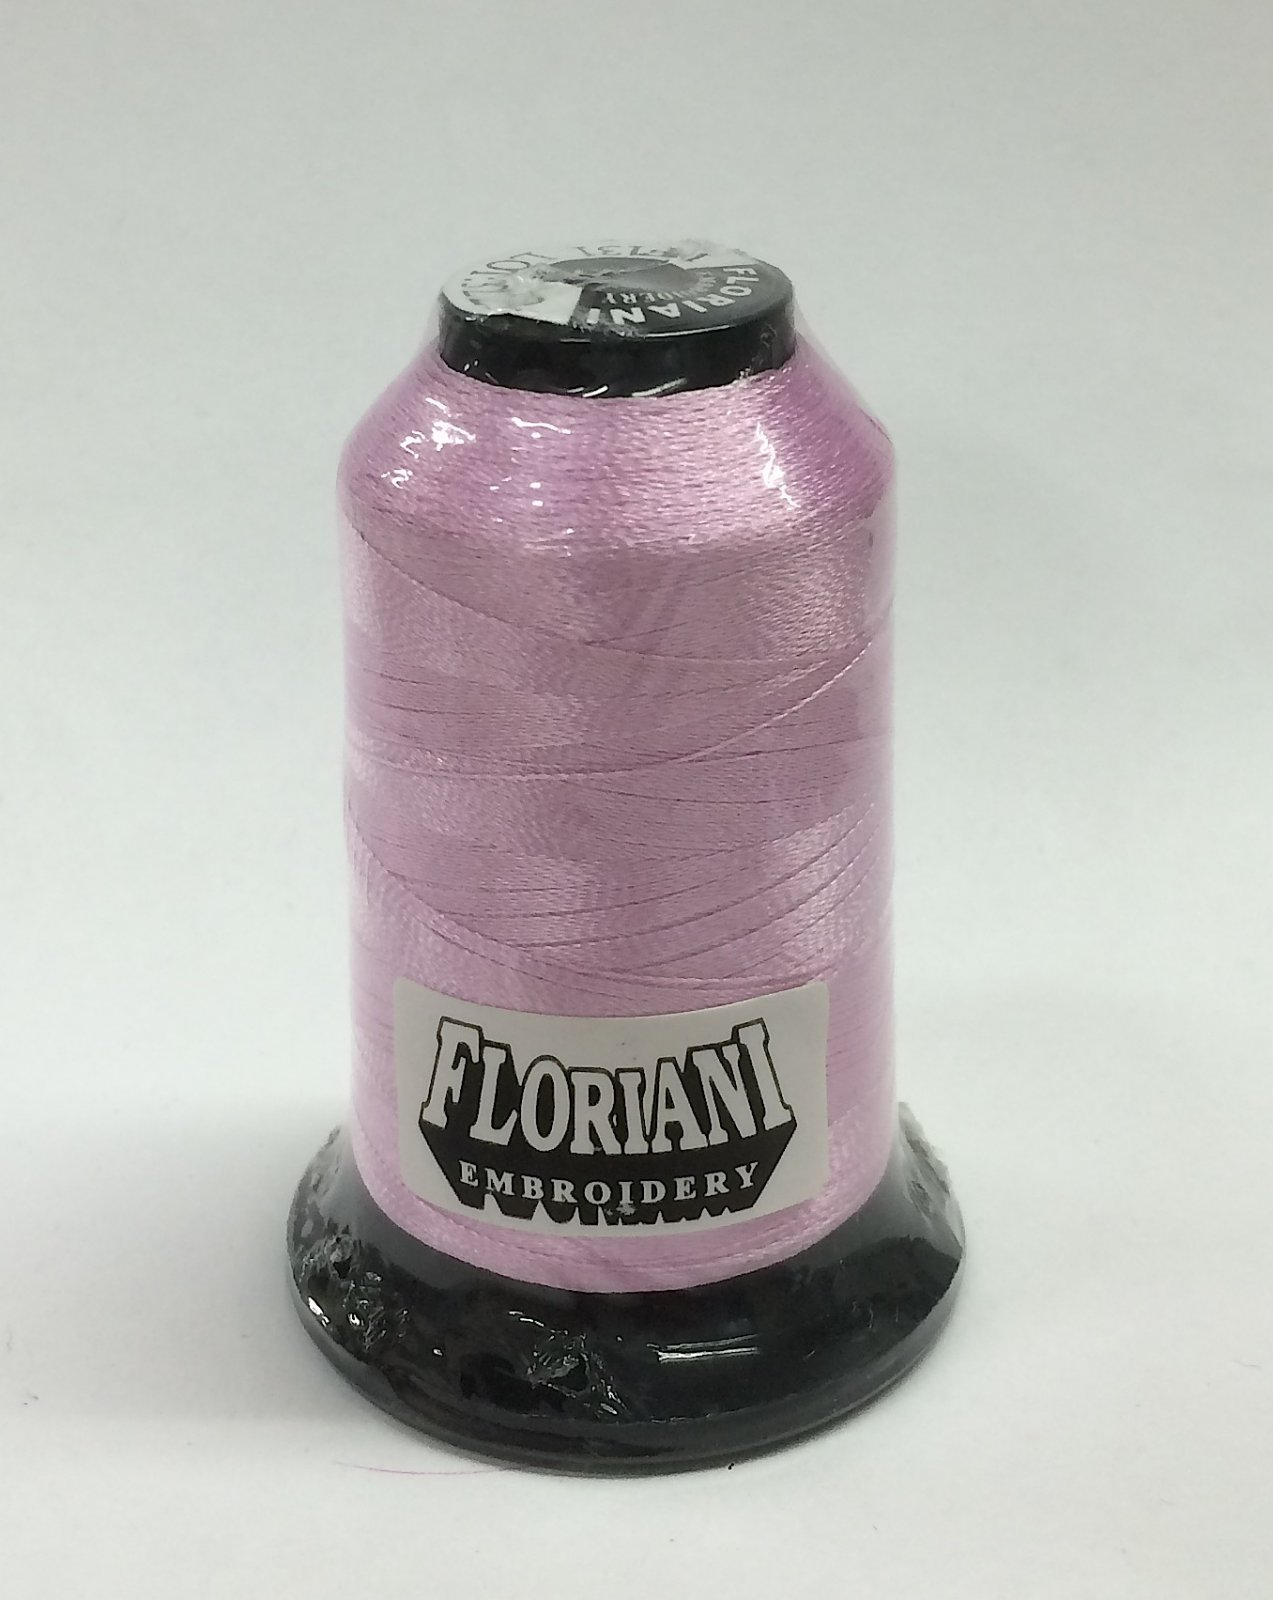 Floriani Embroidery Thread Color #0131